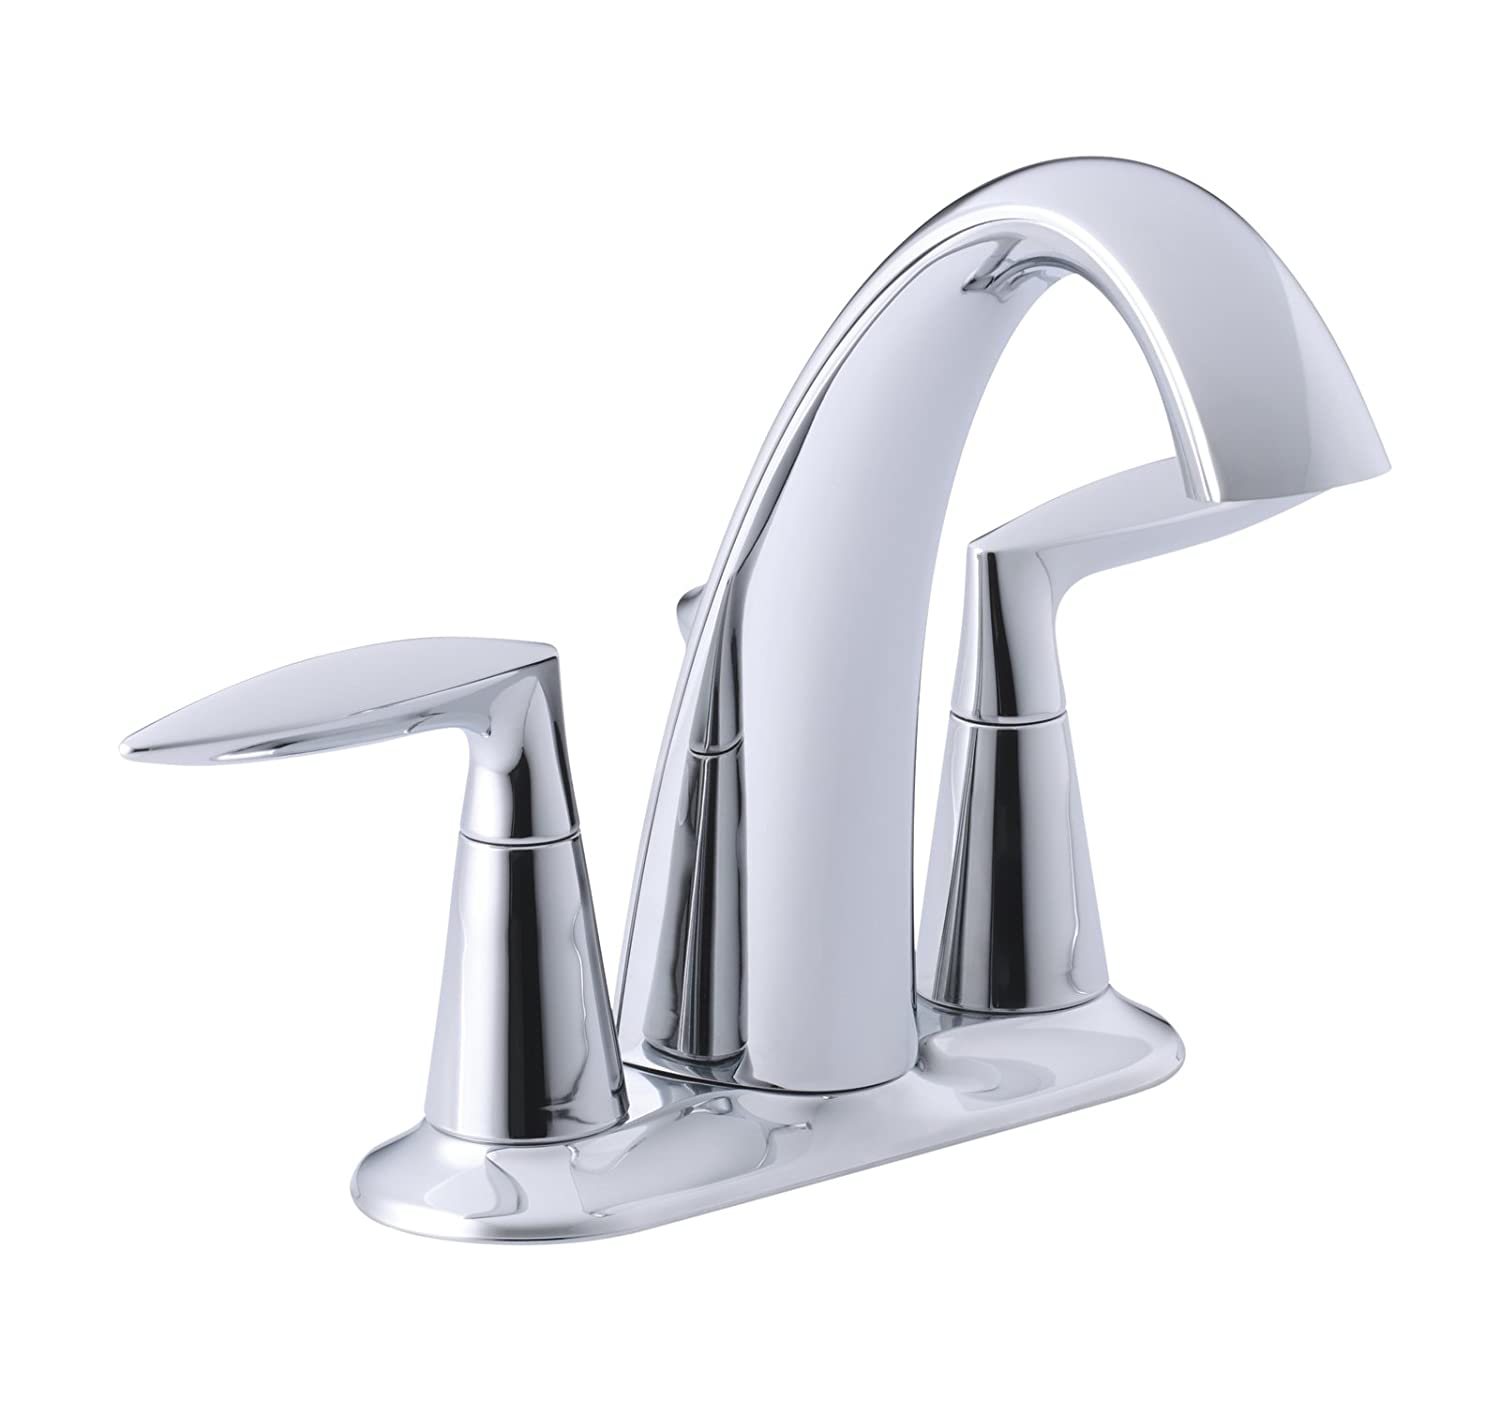 KOHLER K 45100 4 CP Alteo Centerset Lavatory Faucet, Polished Chrome    Touch On Bathroom Sink Faucets   Amazon.com